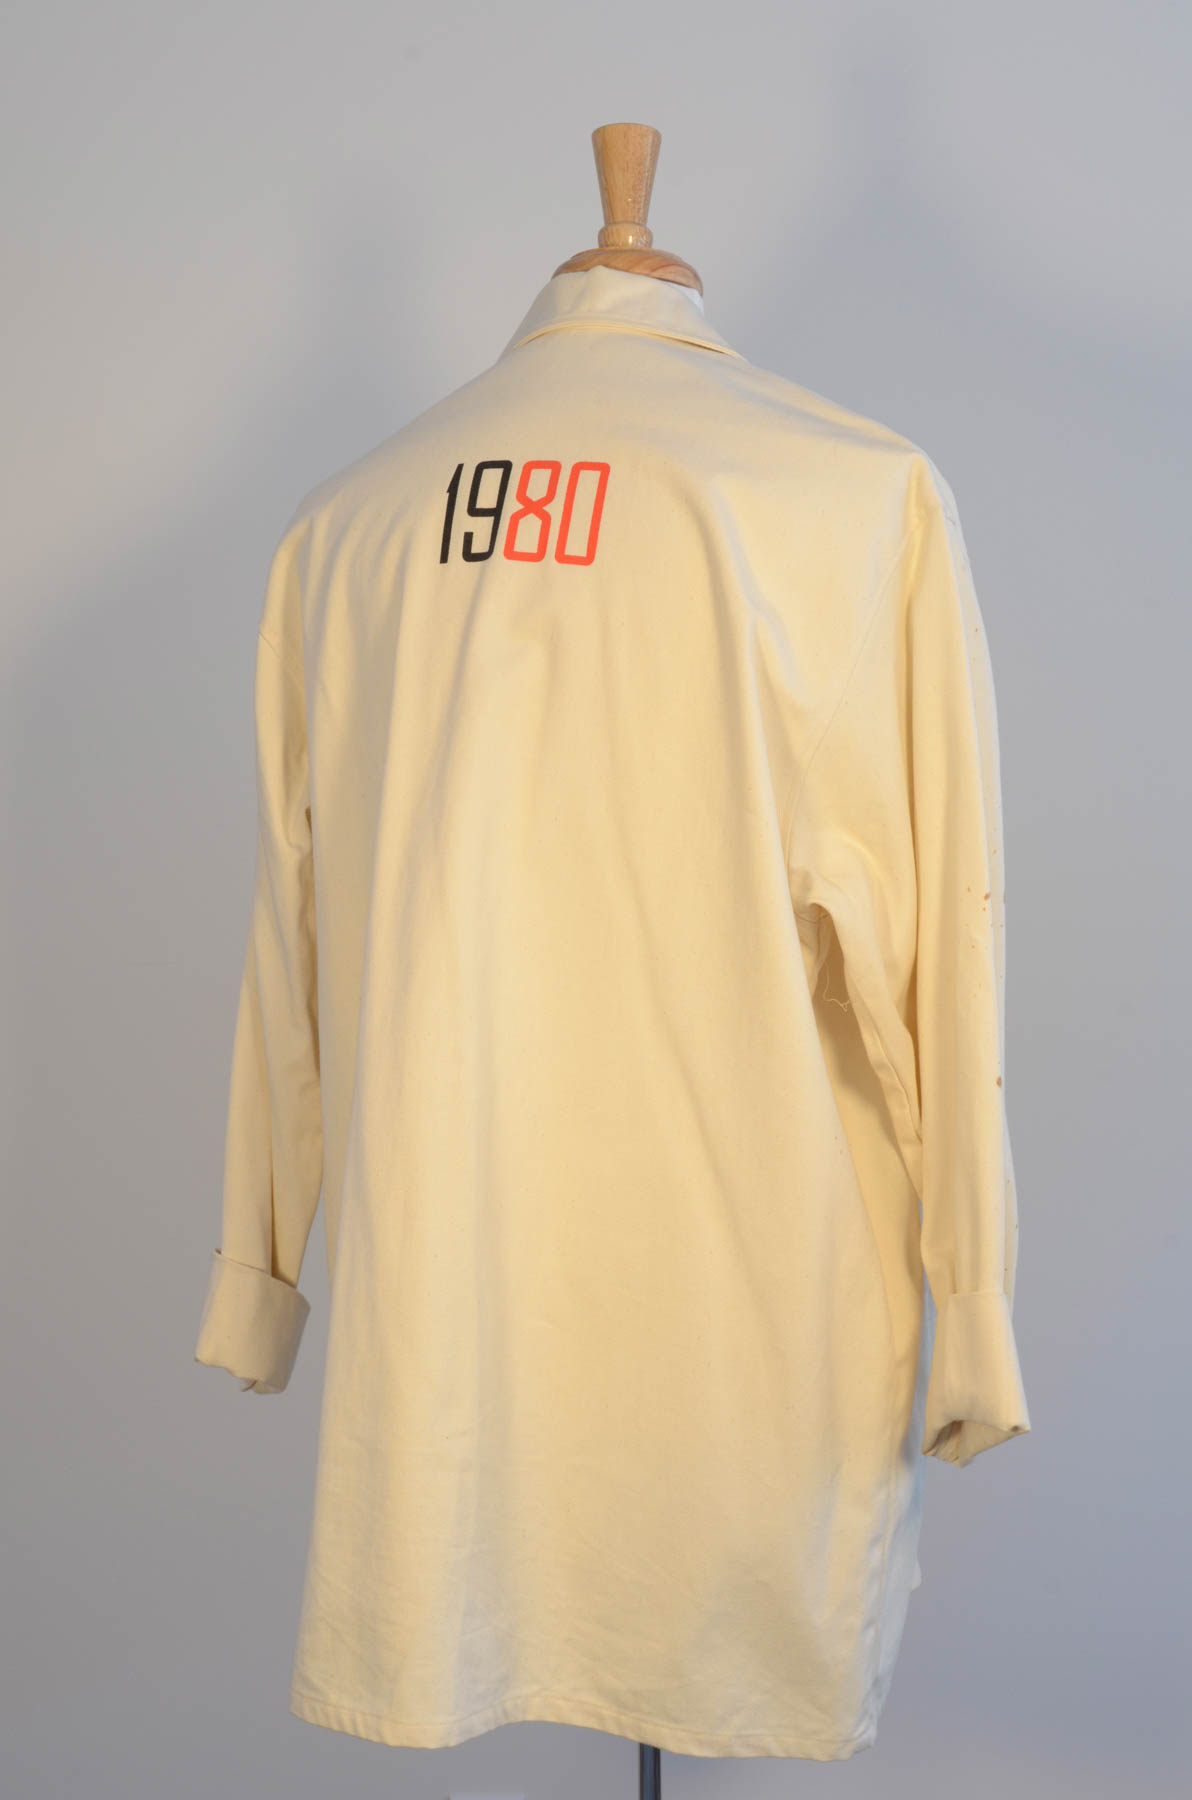 Reunion/Beer Jacket 1980 Rear